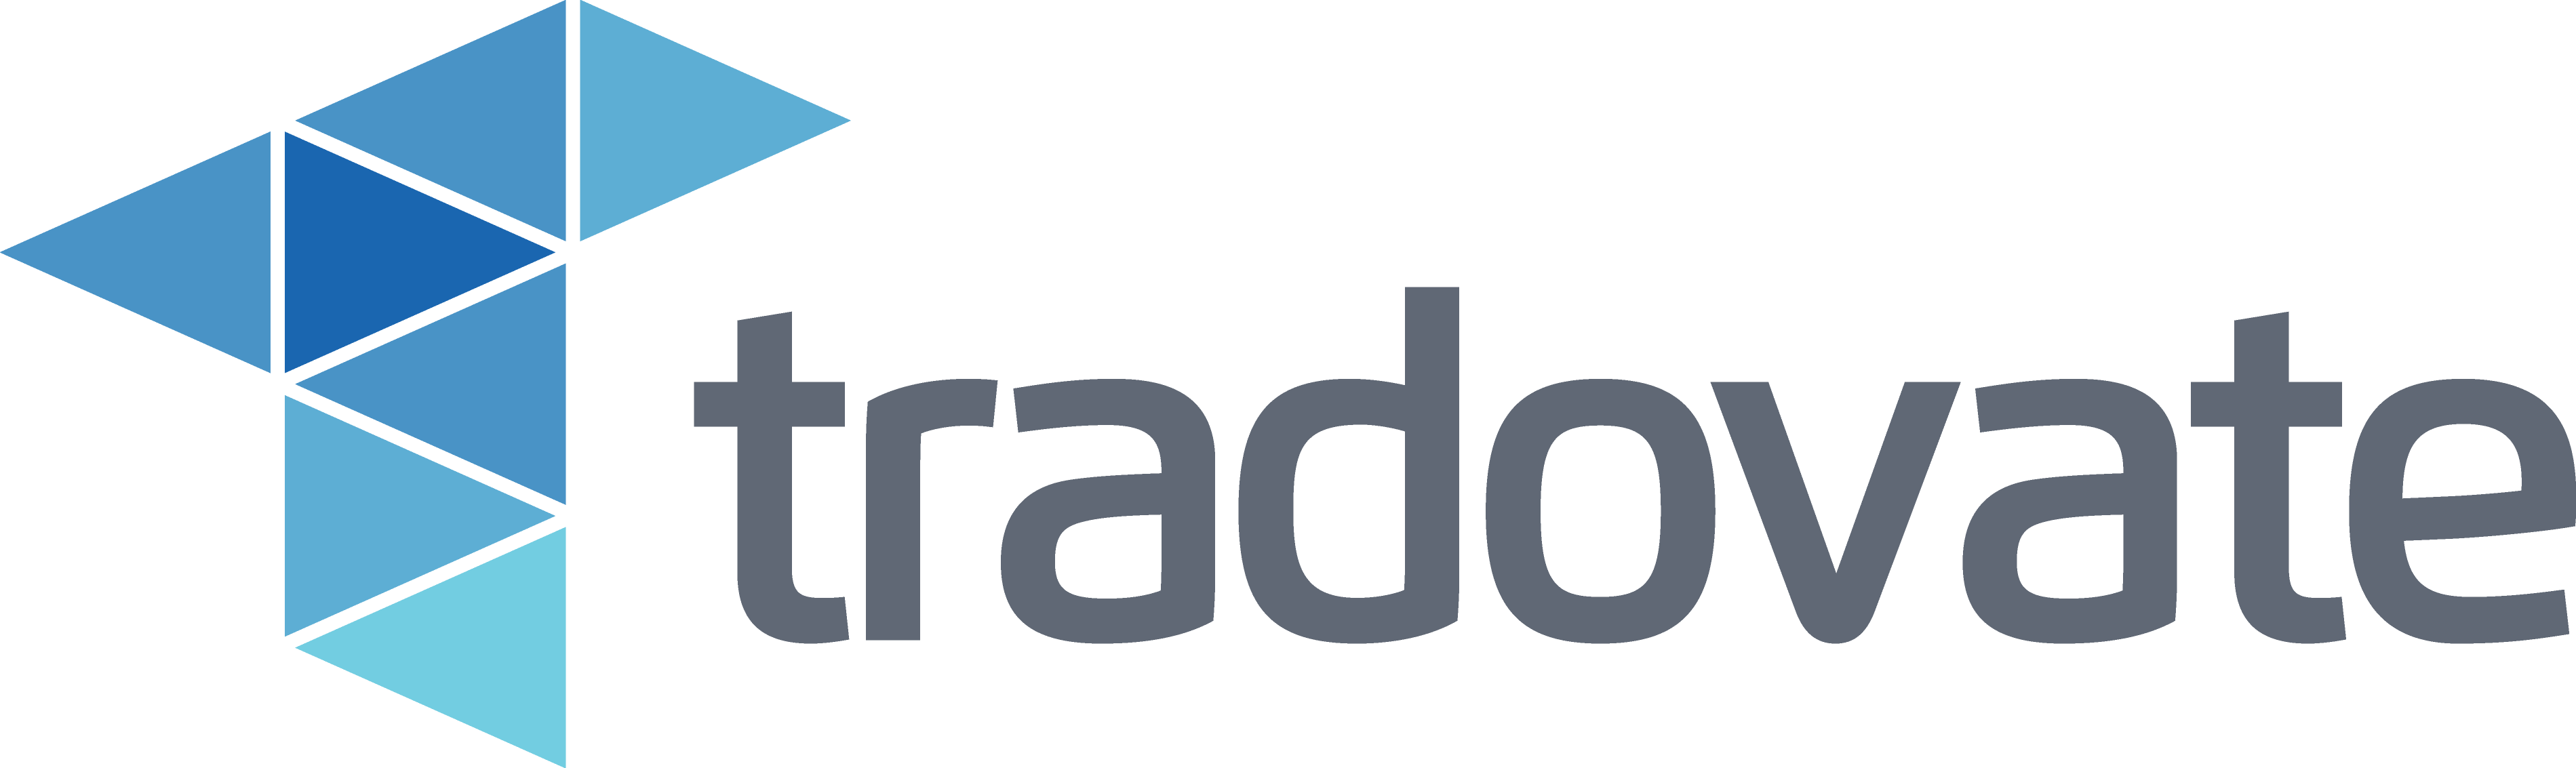 Cooperation of Tradovate and VeloxPro